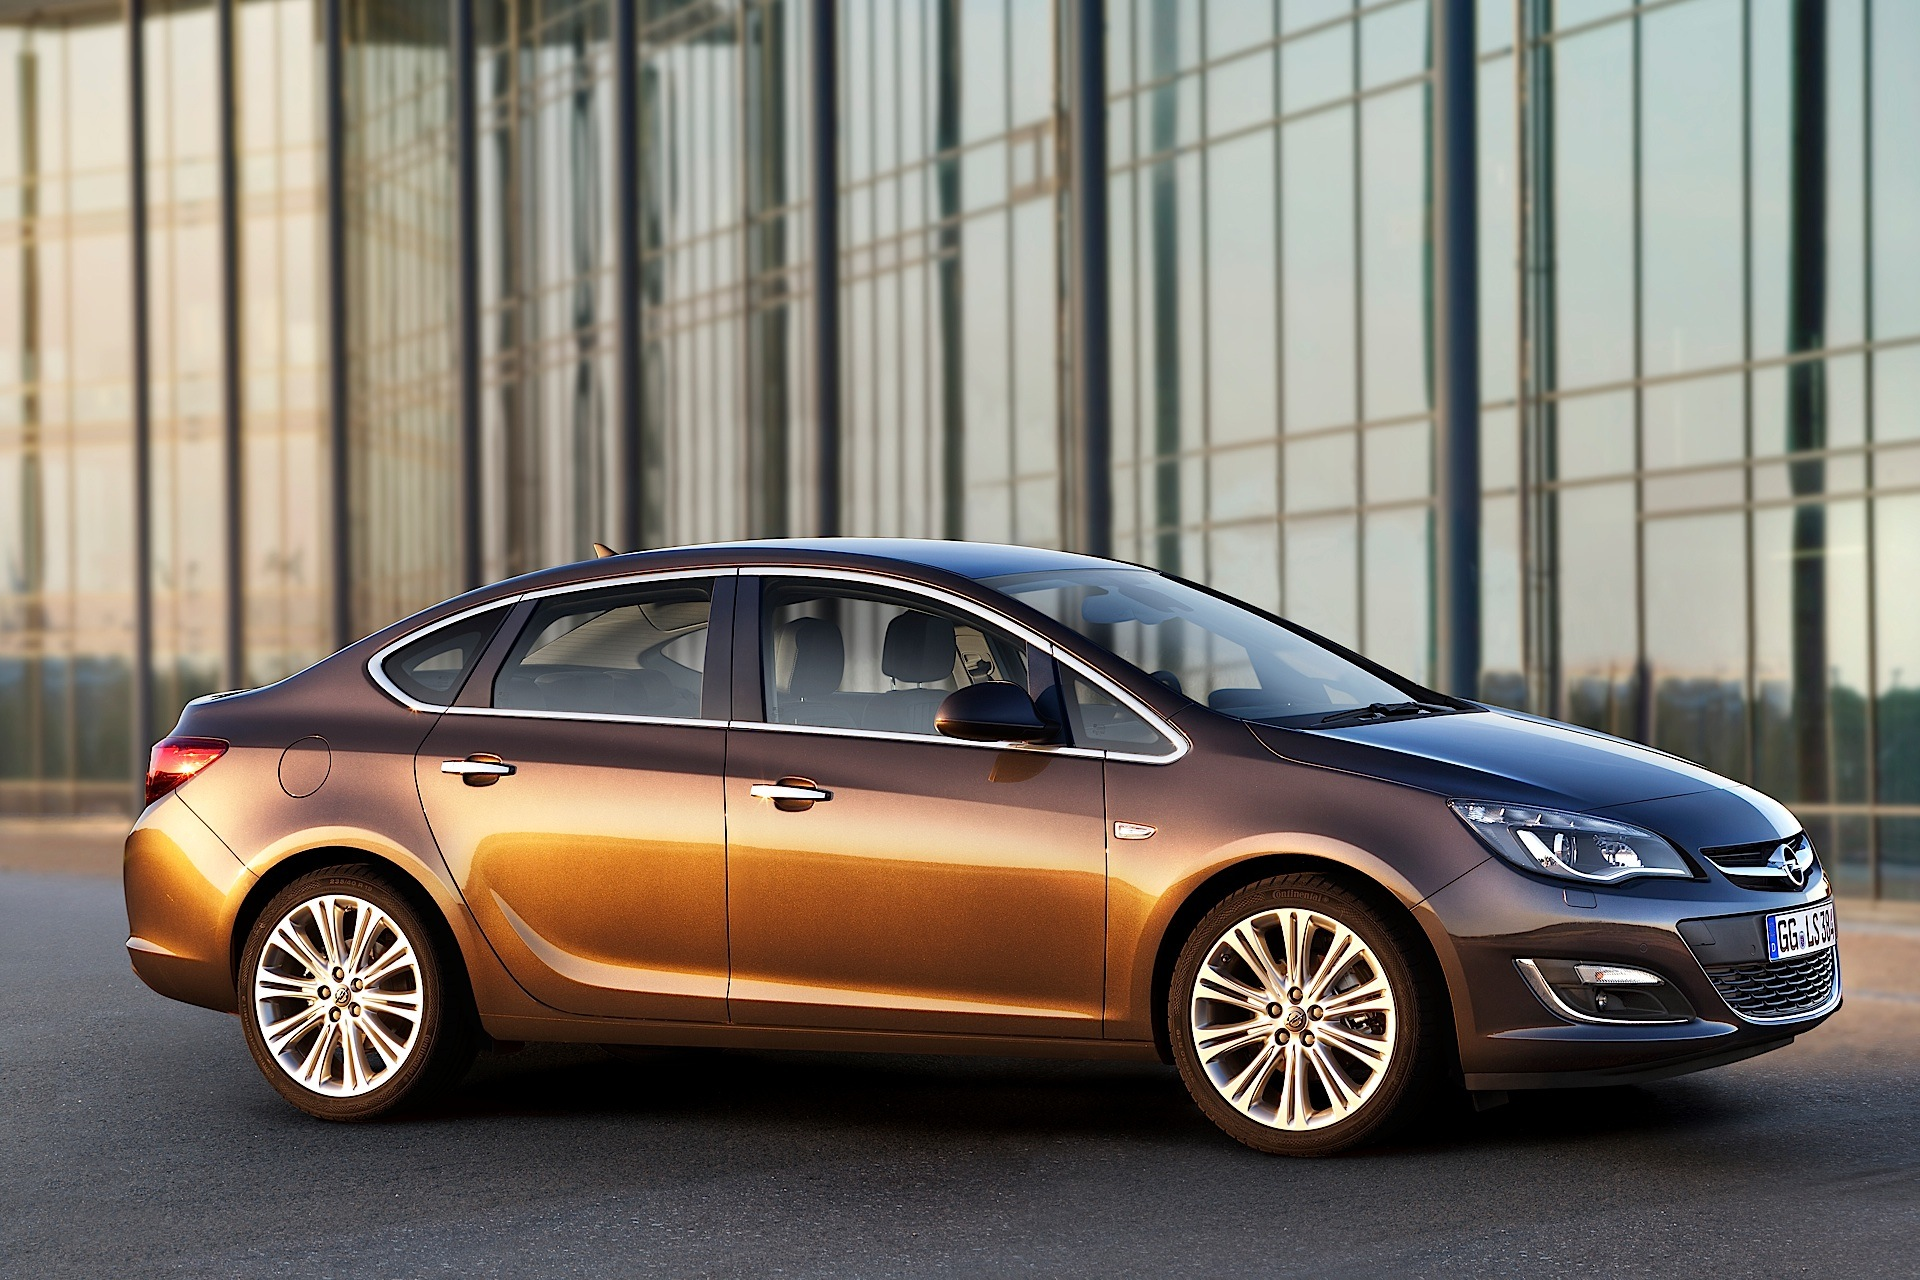 2017 Opel Astra A/T